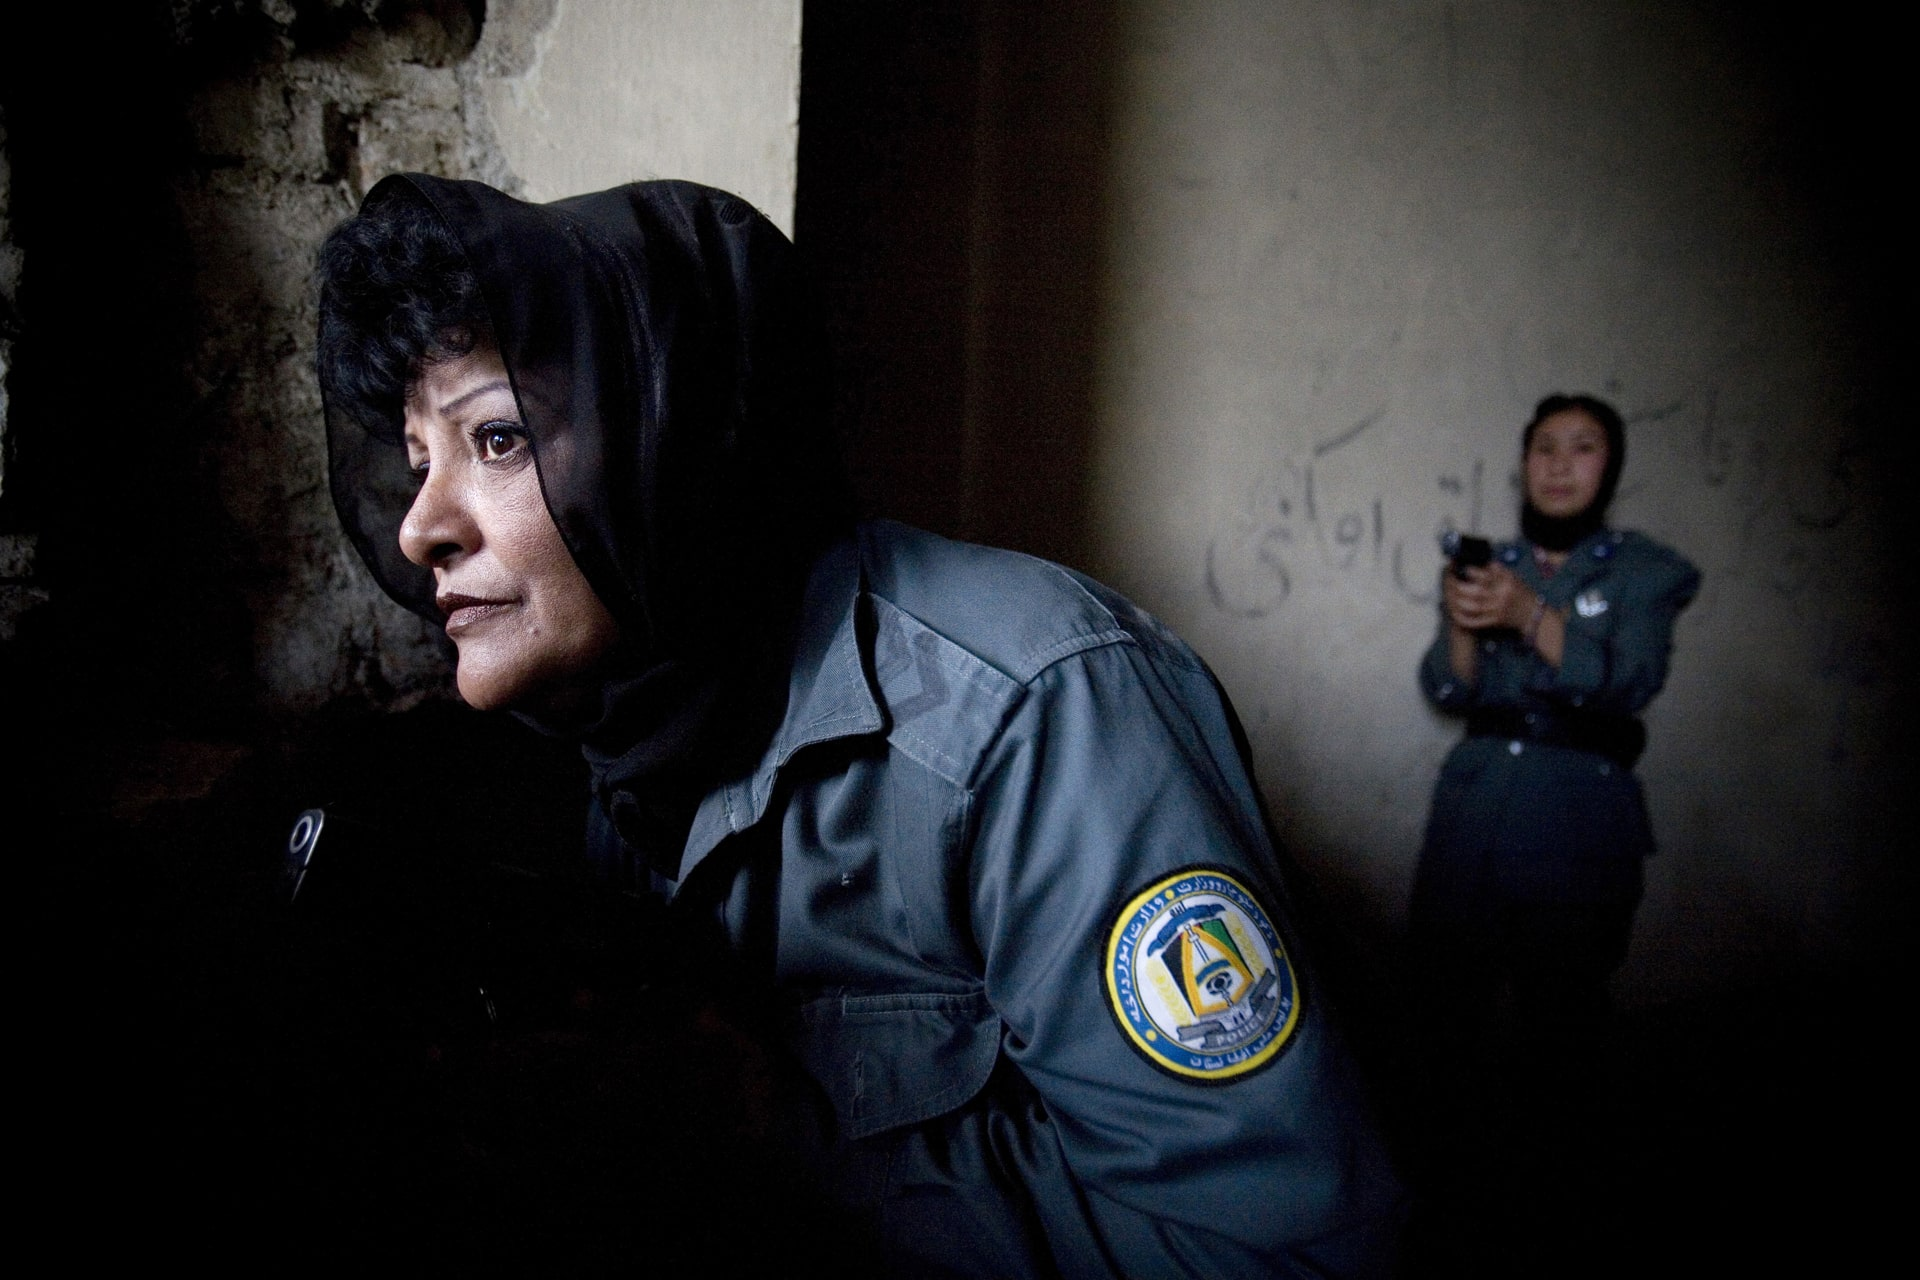 Women's Police Unit in Afghanistan